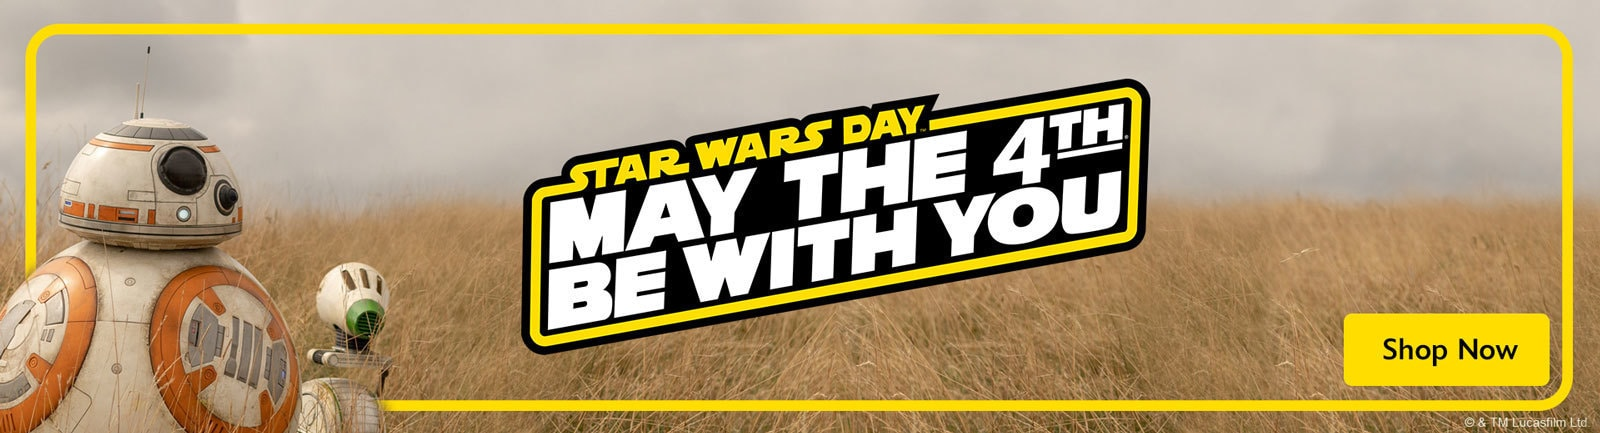 May The 4th Products Banner - Lazada